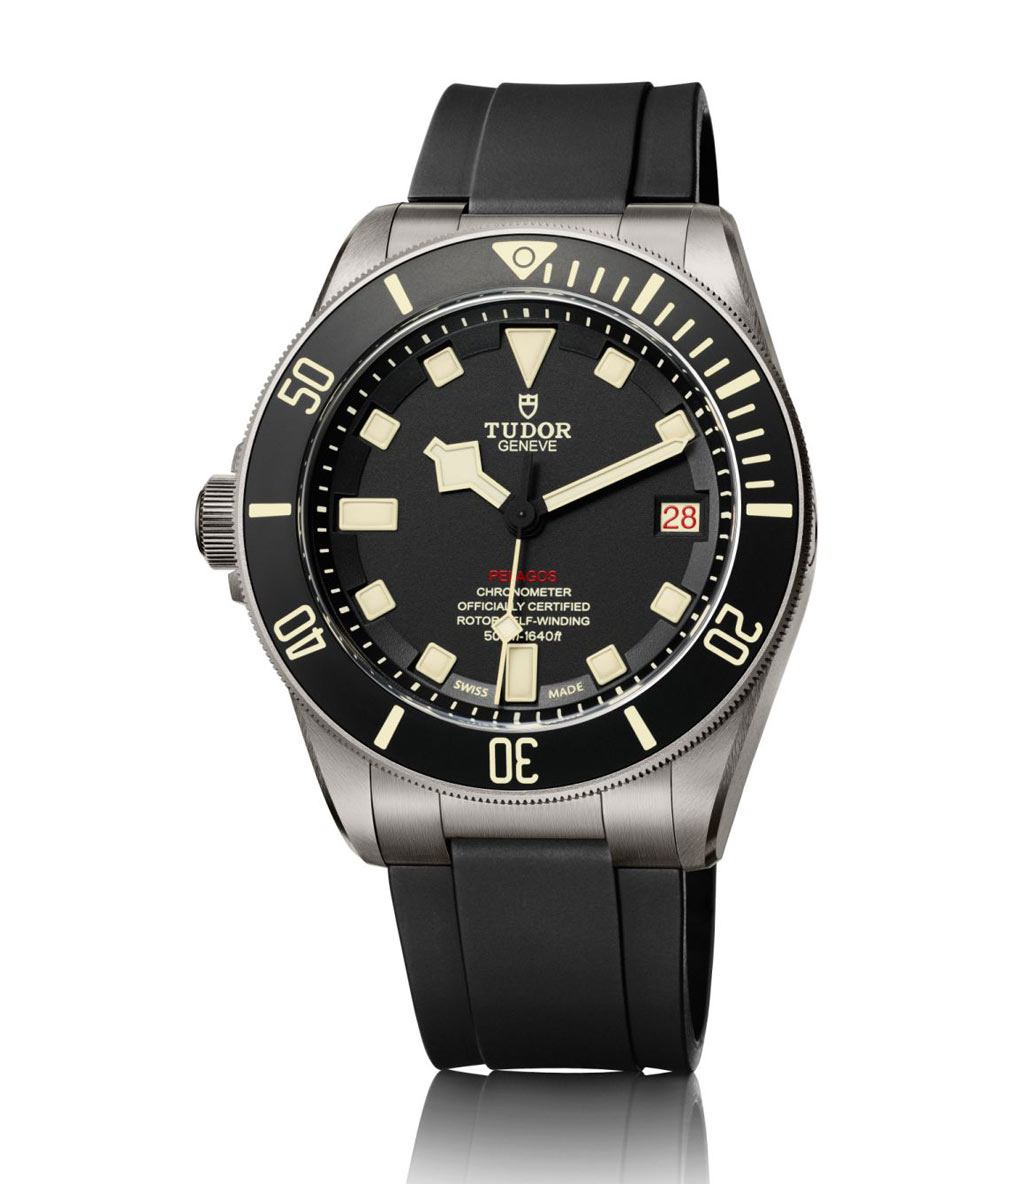 Tudor Pelagos Lhd Time And Watches The Watch Blog